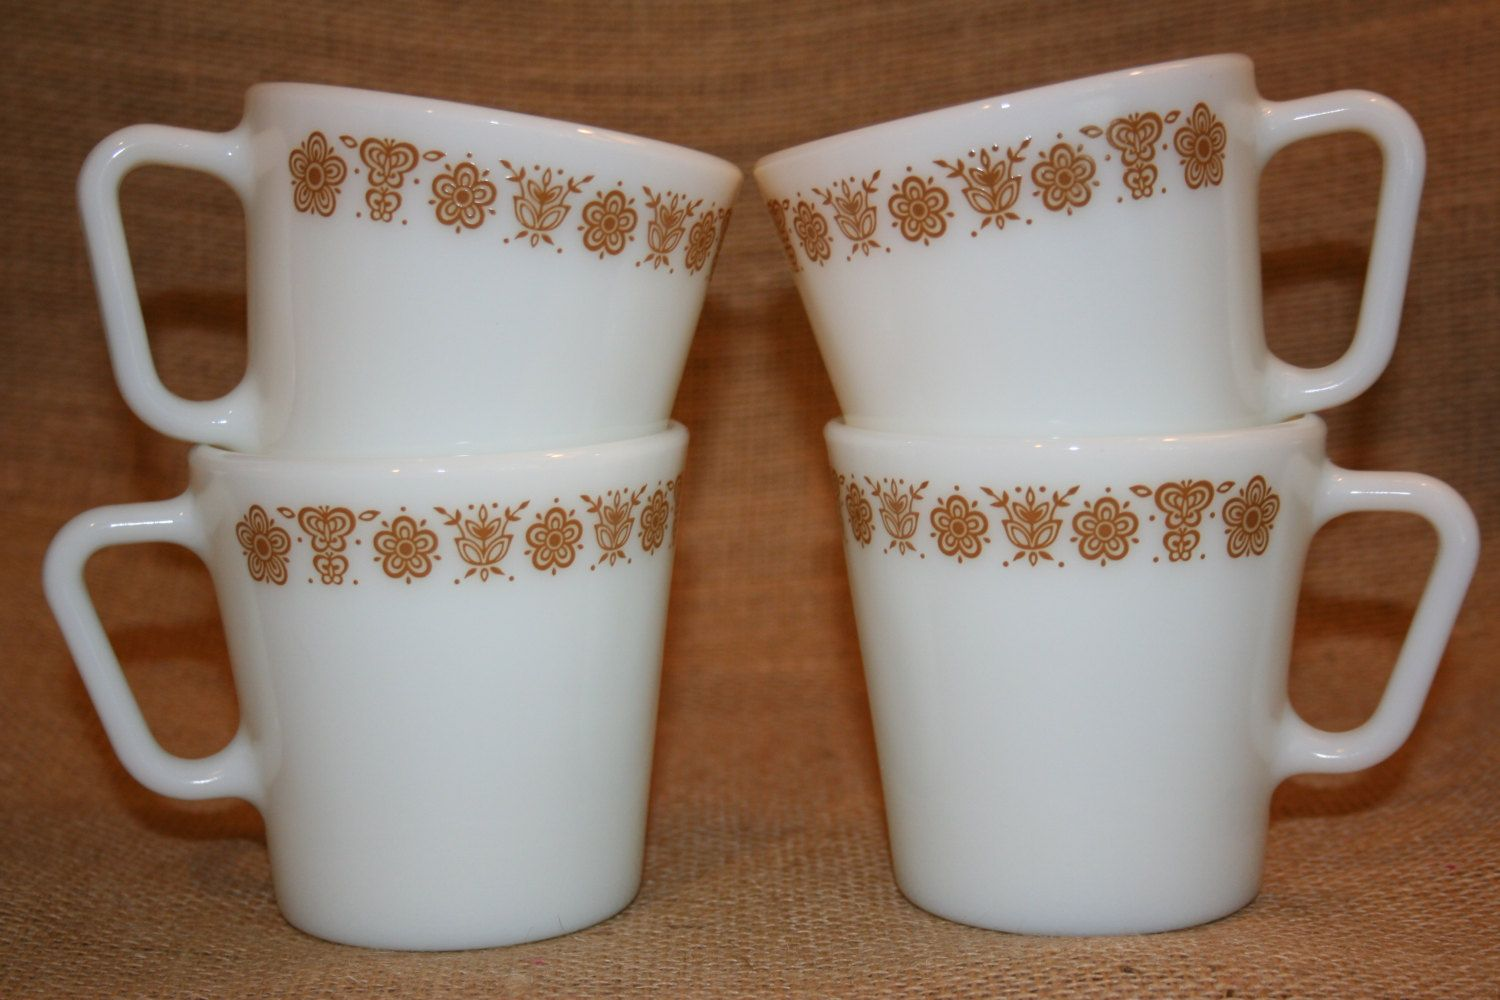 Vintage Pyrex Coffee Mugs Tea Cups Set of 4 Butterfly Gold Pattern